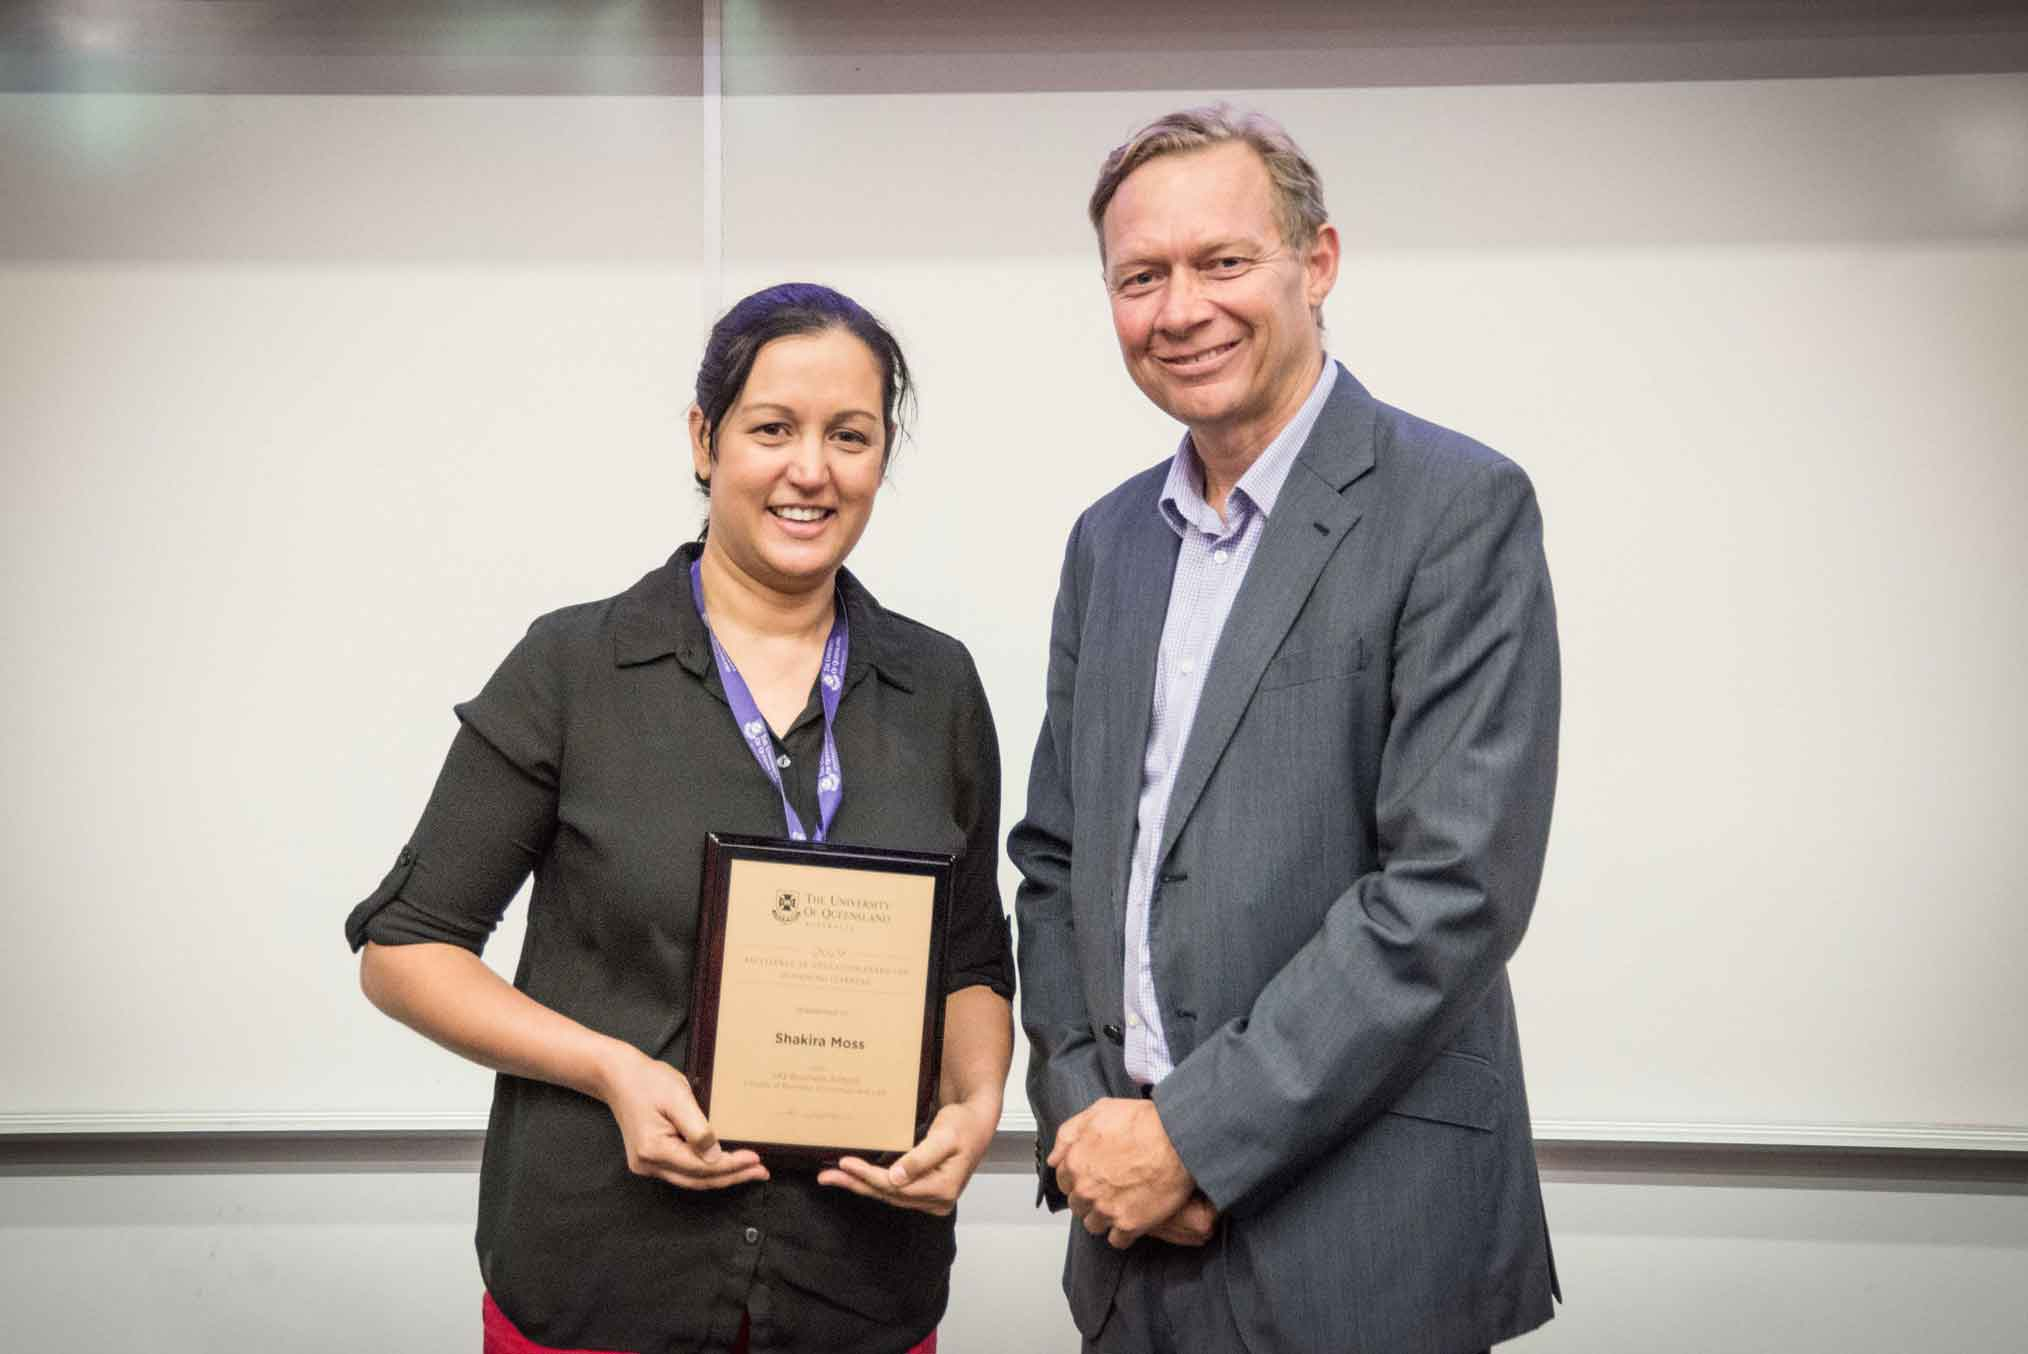 This is an image of award-winner Shakira Moss and Professor Andrew Griffiths